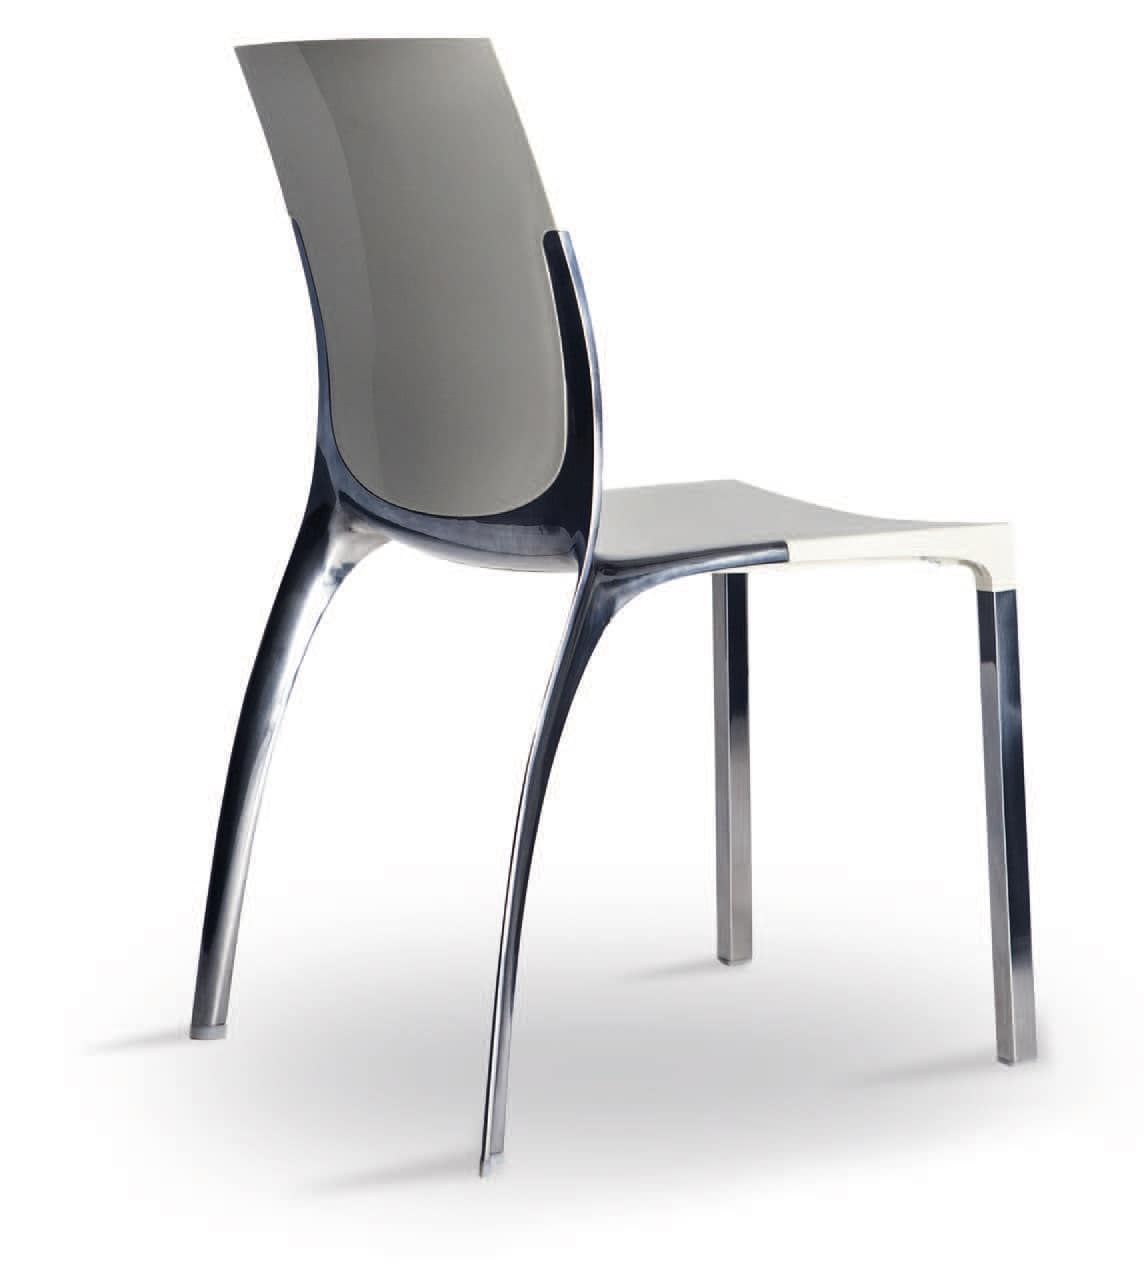 SE 800 / EST, Chair in aluminum and polycarbonate, in elegant style